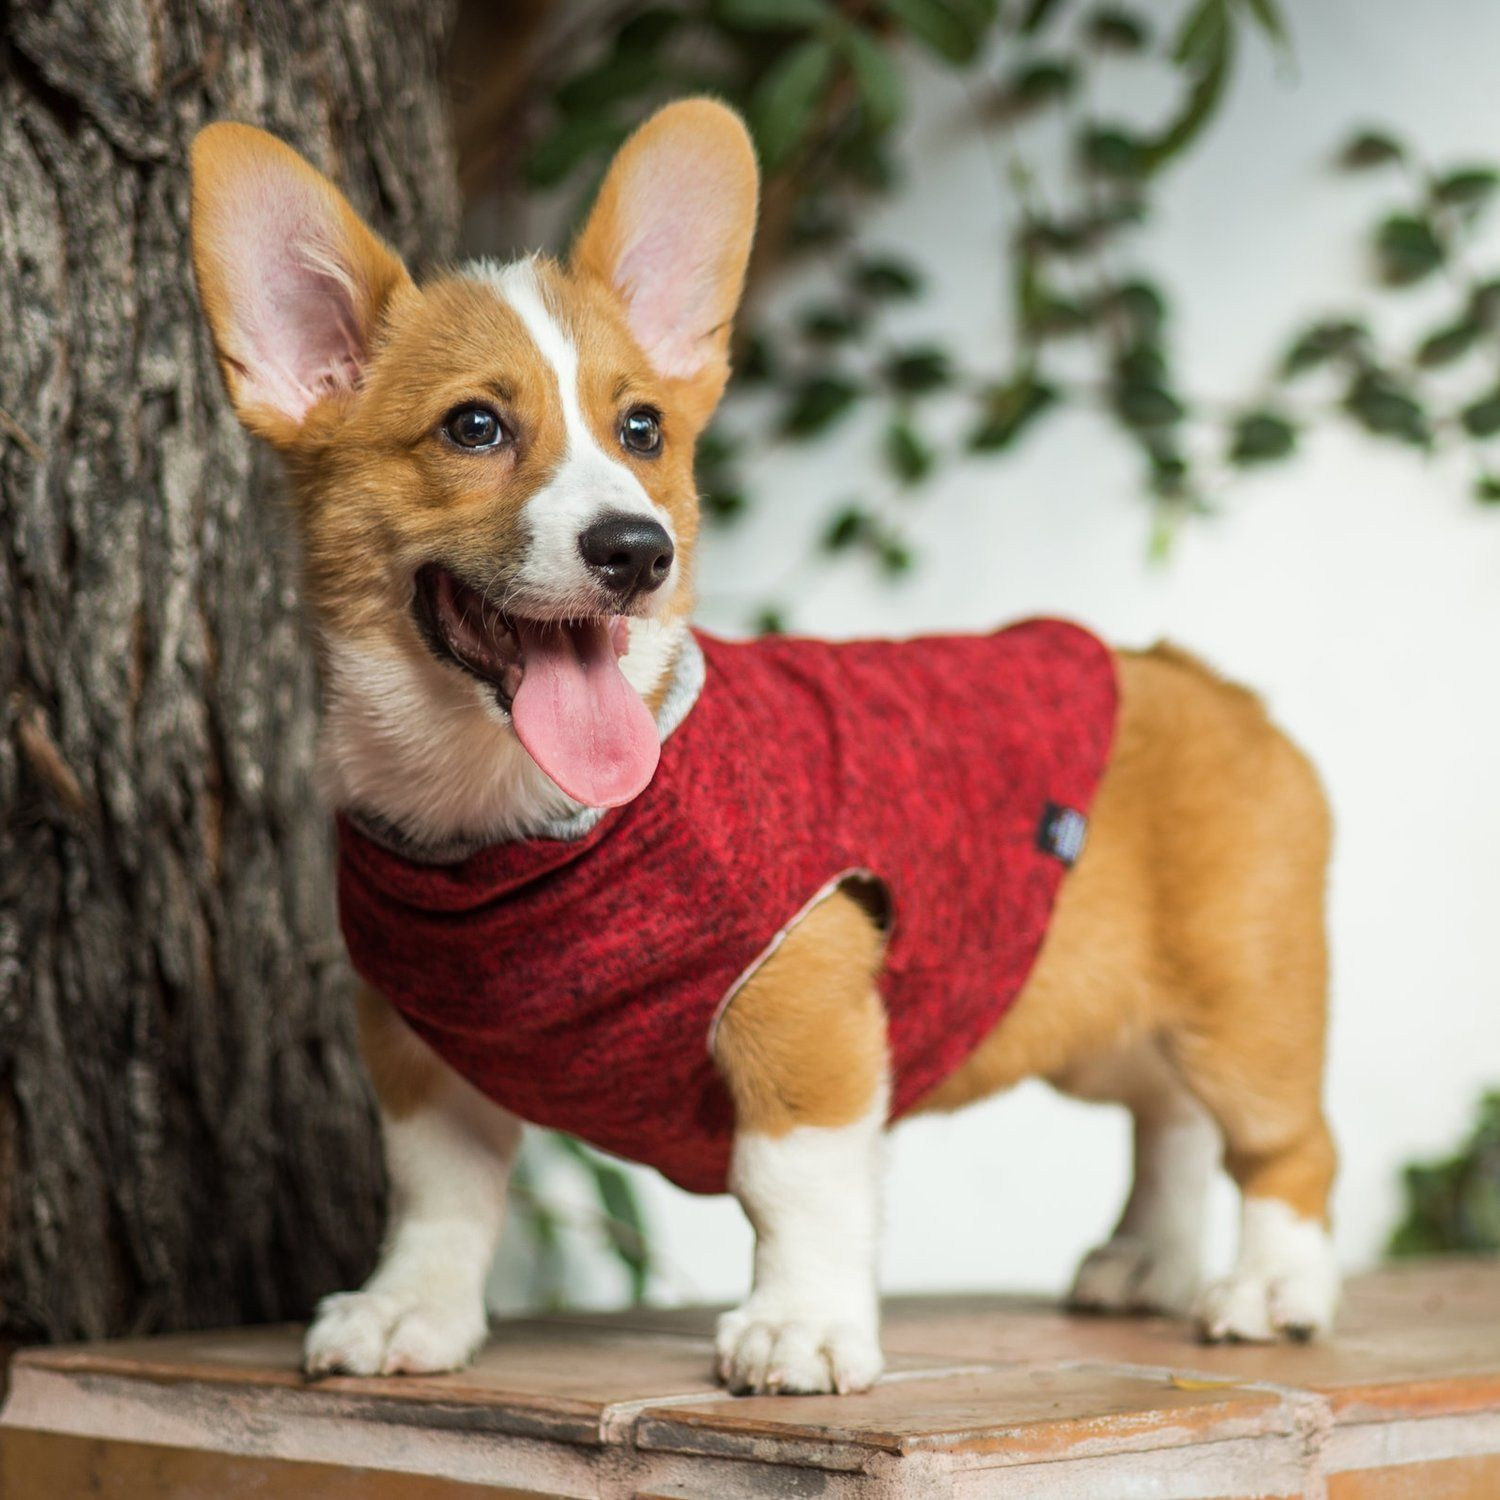 847225a6 Dog Clothes That Give Back to Rescue Dogs: Reversible Dog Sweater Ethical Dog  Clothing #corgi #corgidog #dogclothes #dogsweater #petclothes  #petaccessories ...